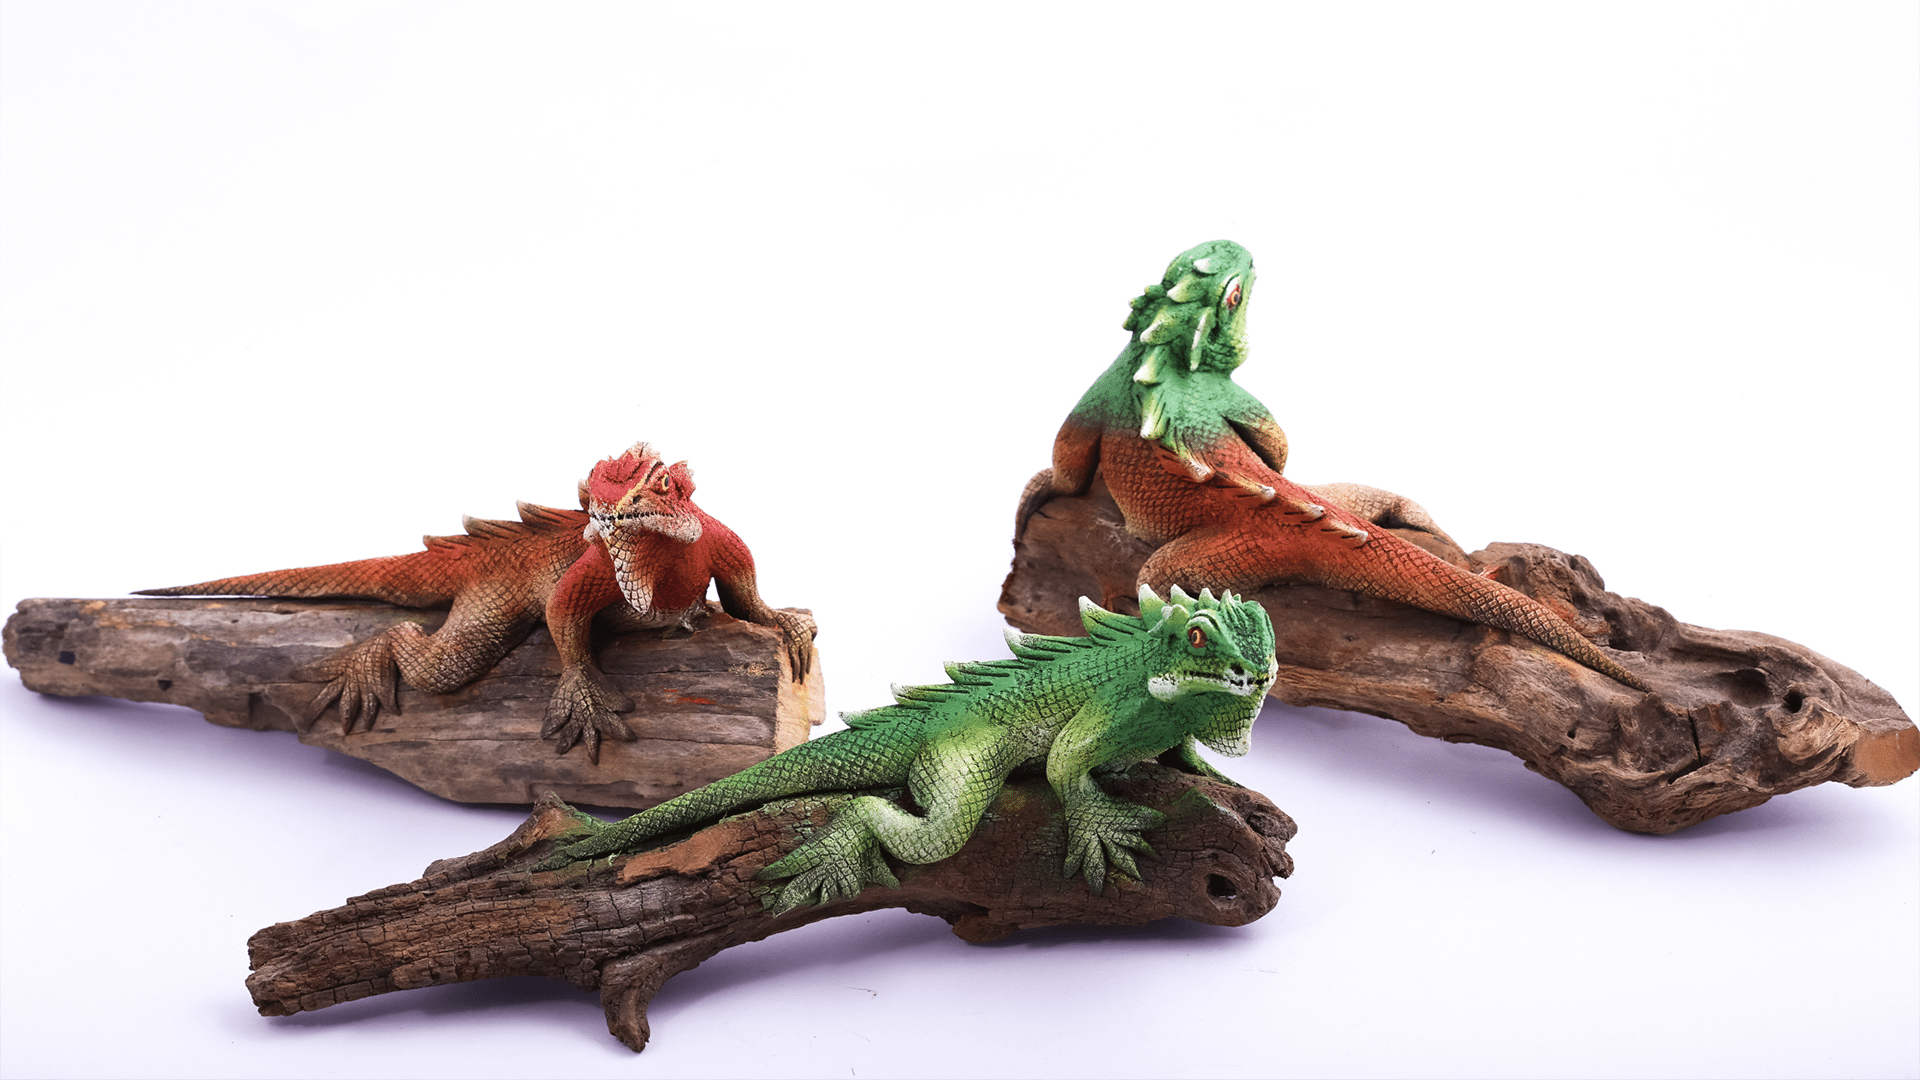 Iguana figurines and handicrafts made from sawdust